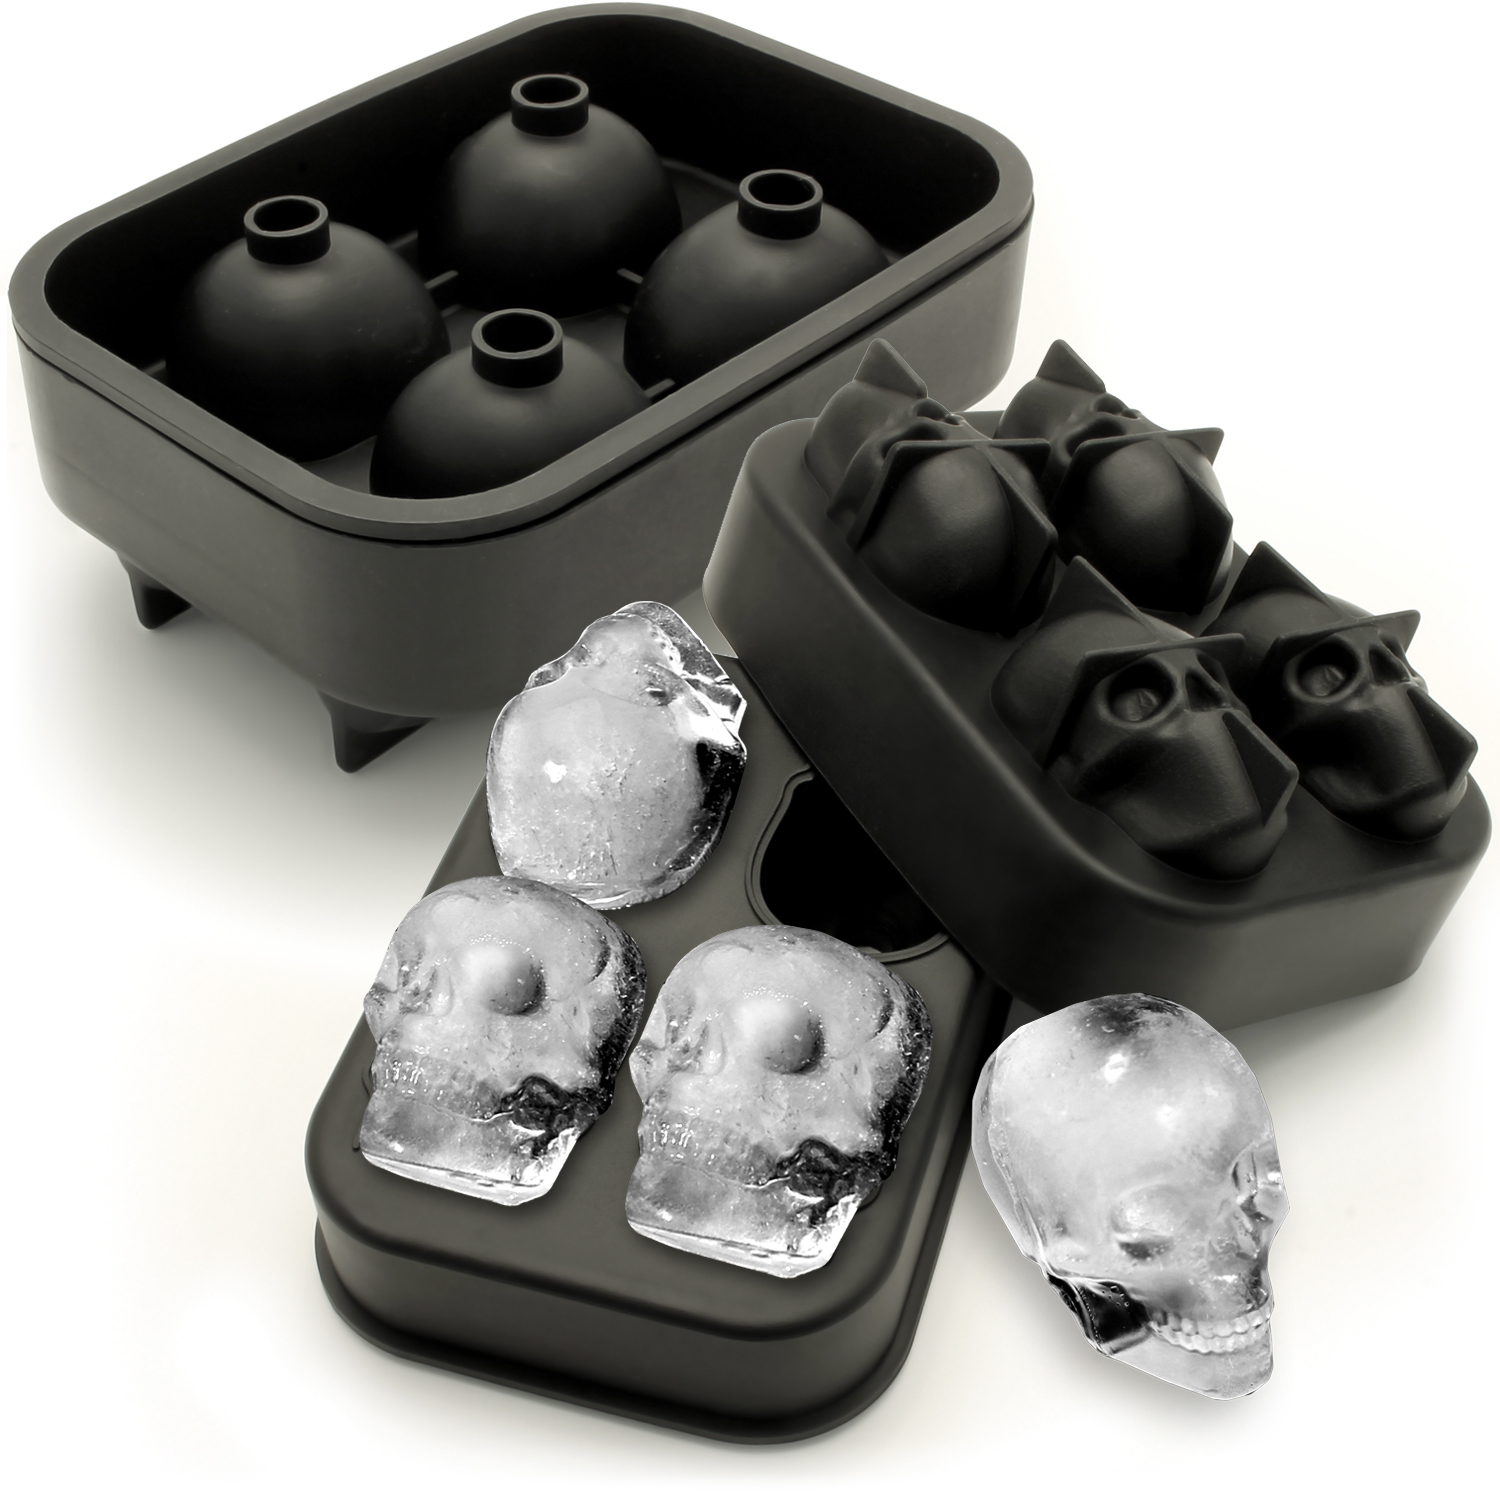 iGadgitz Home Silicone Skull Ice Cube Tray Food Grade Ice Skulls Mould Maker for Cocktail, Whiskey, Liquor etc